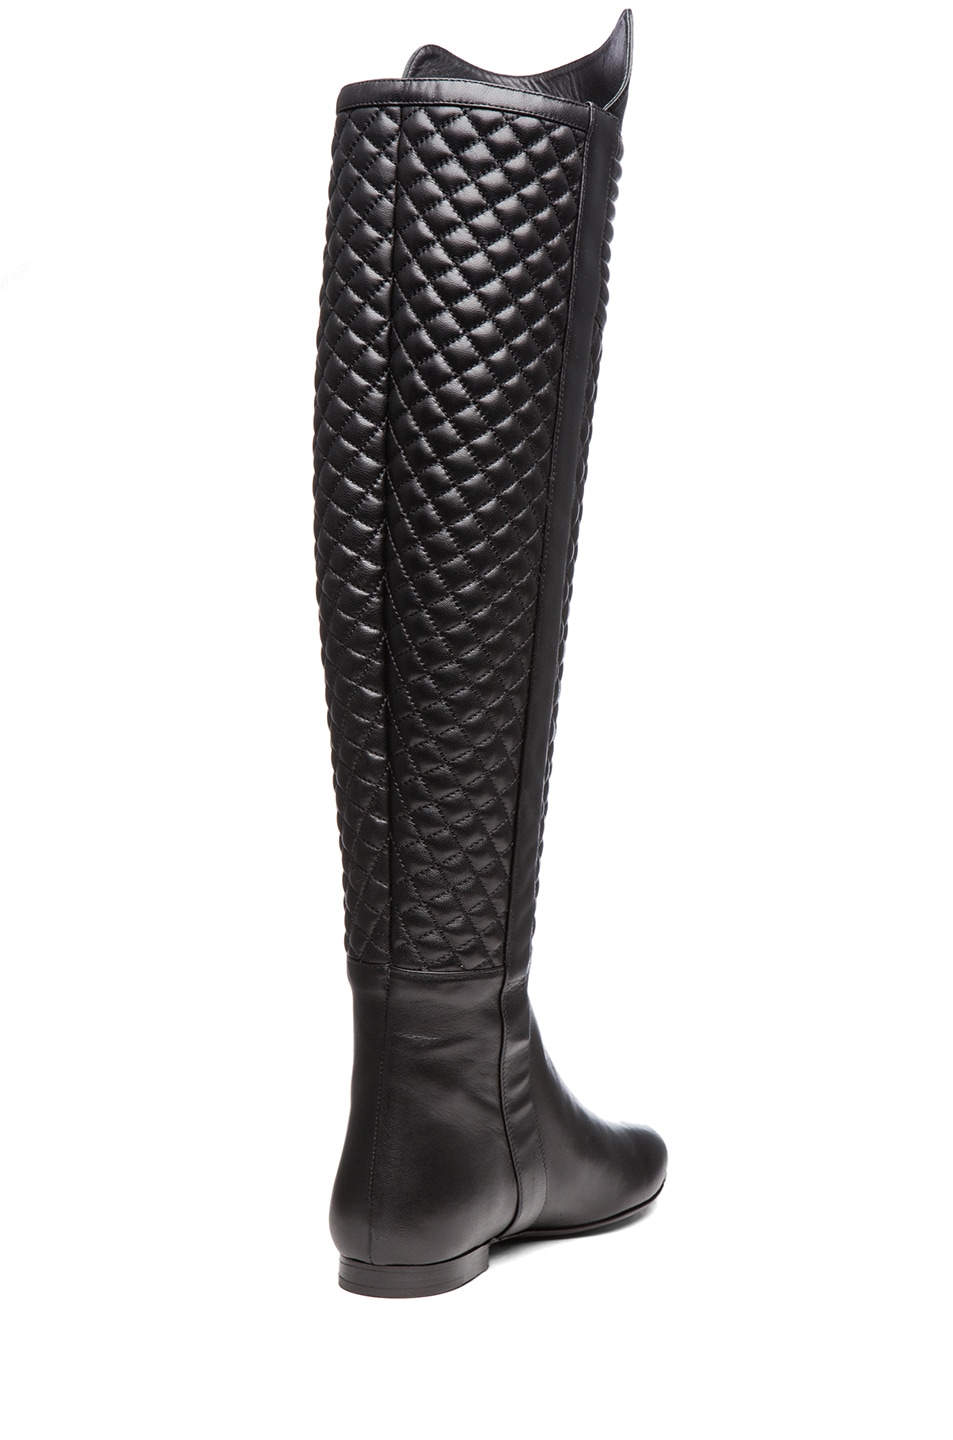 Image 3 of Brian Atwood Ares Nappa Leather Boot in Black